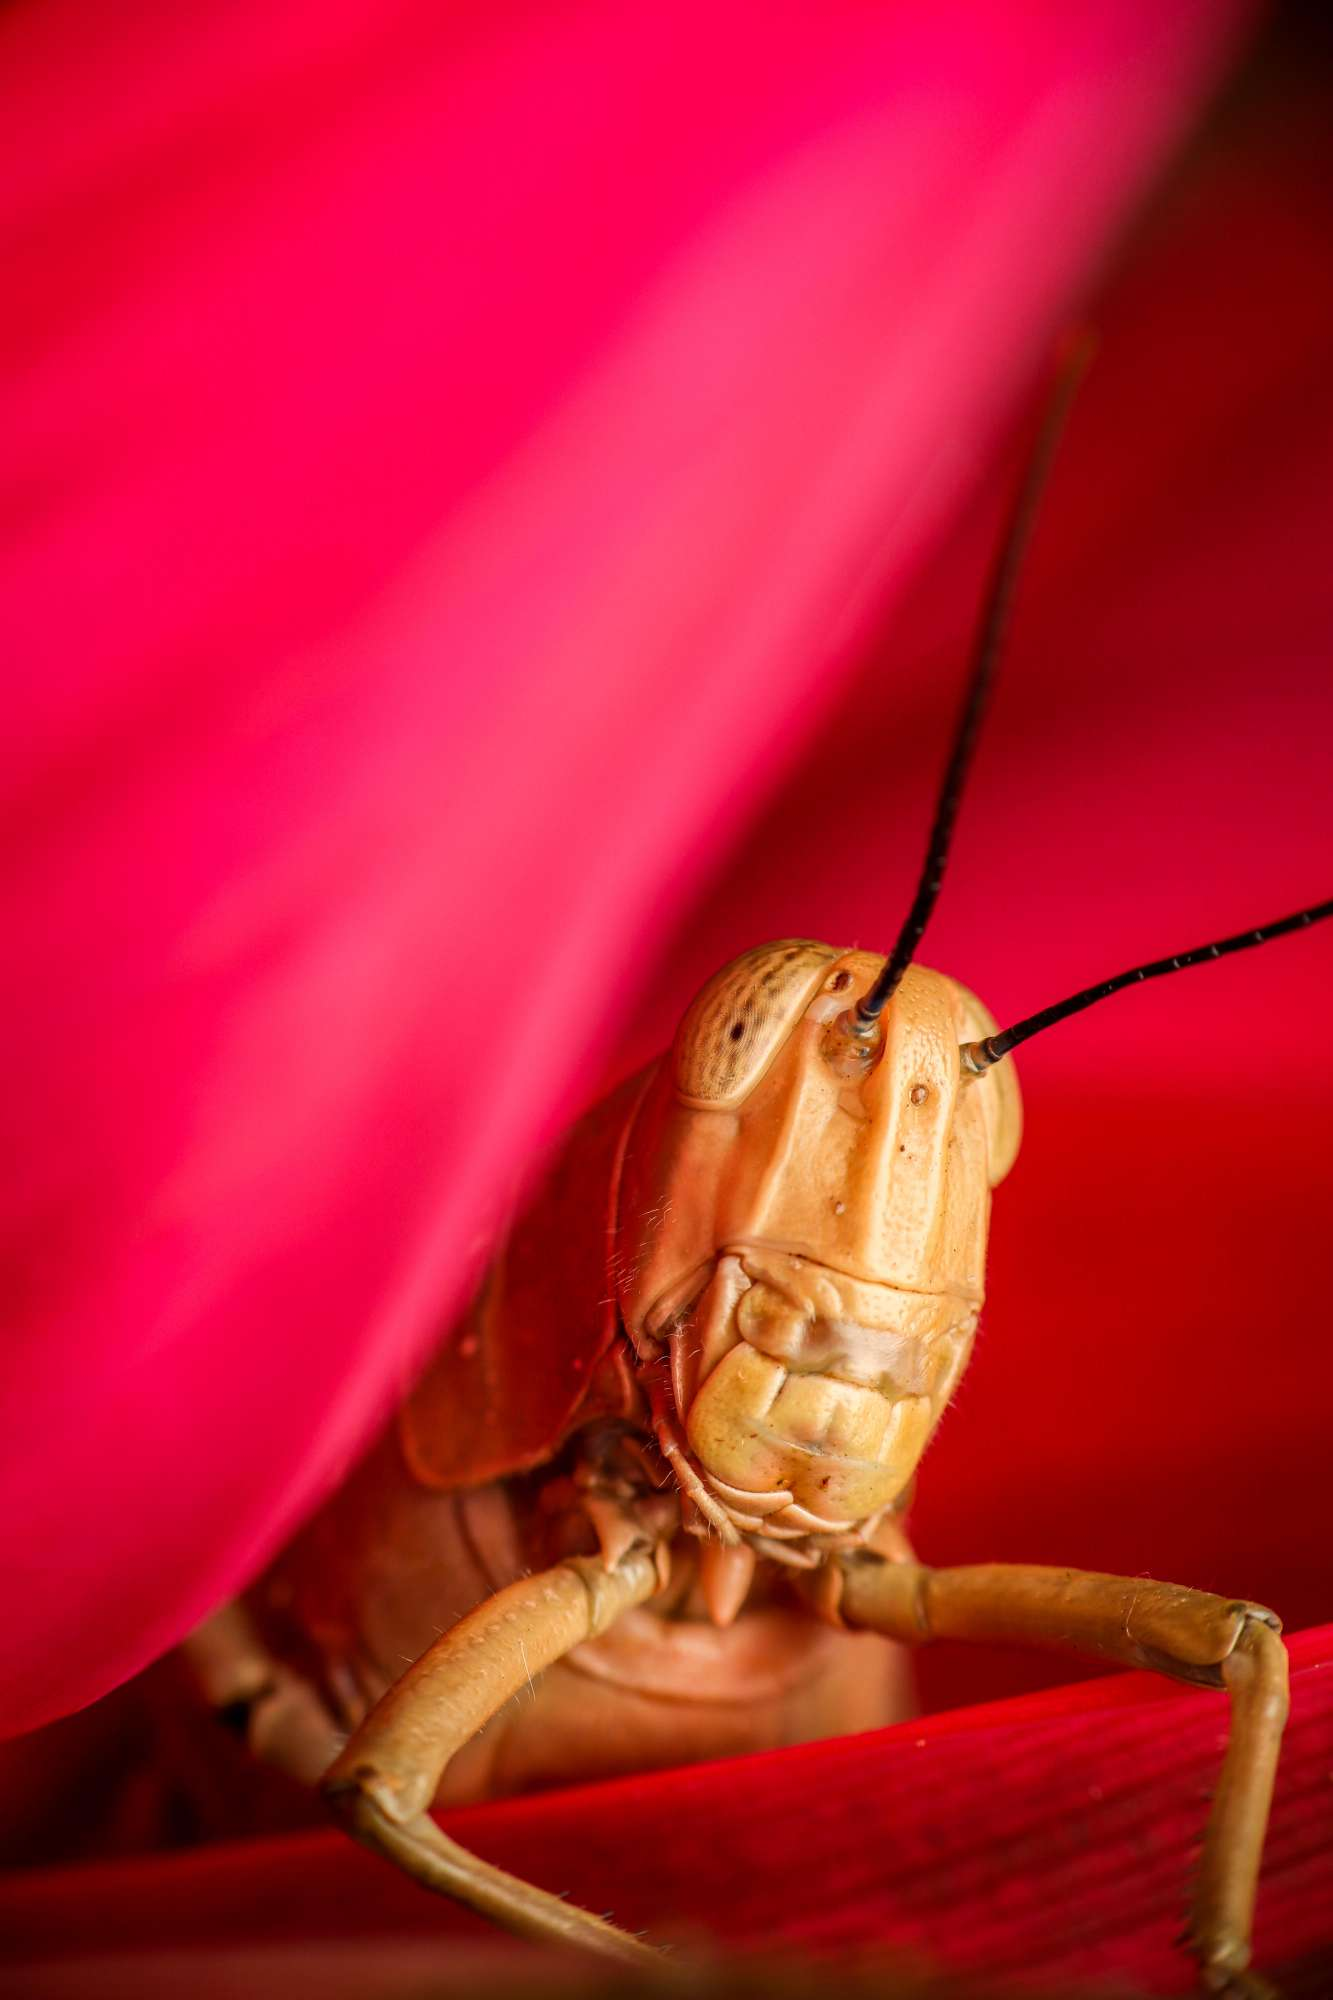 A large golden grasshopper sits amongst red flowers